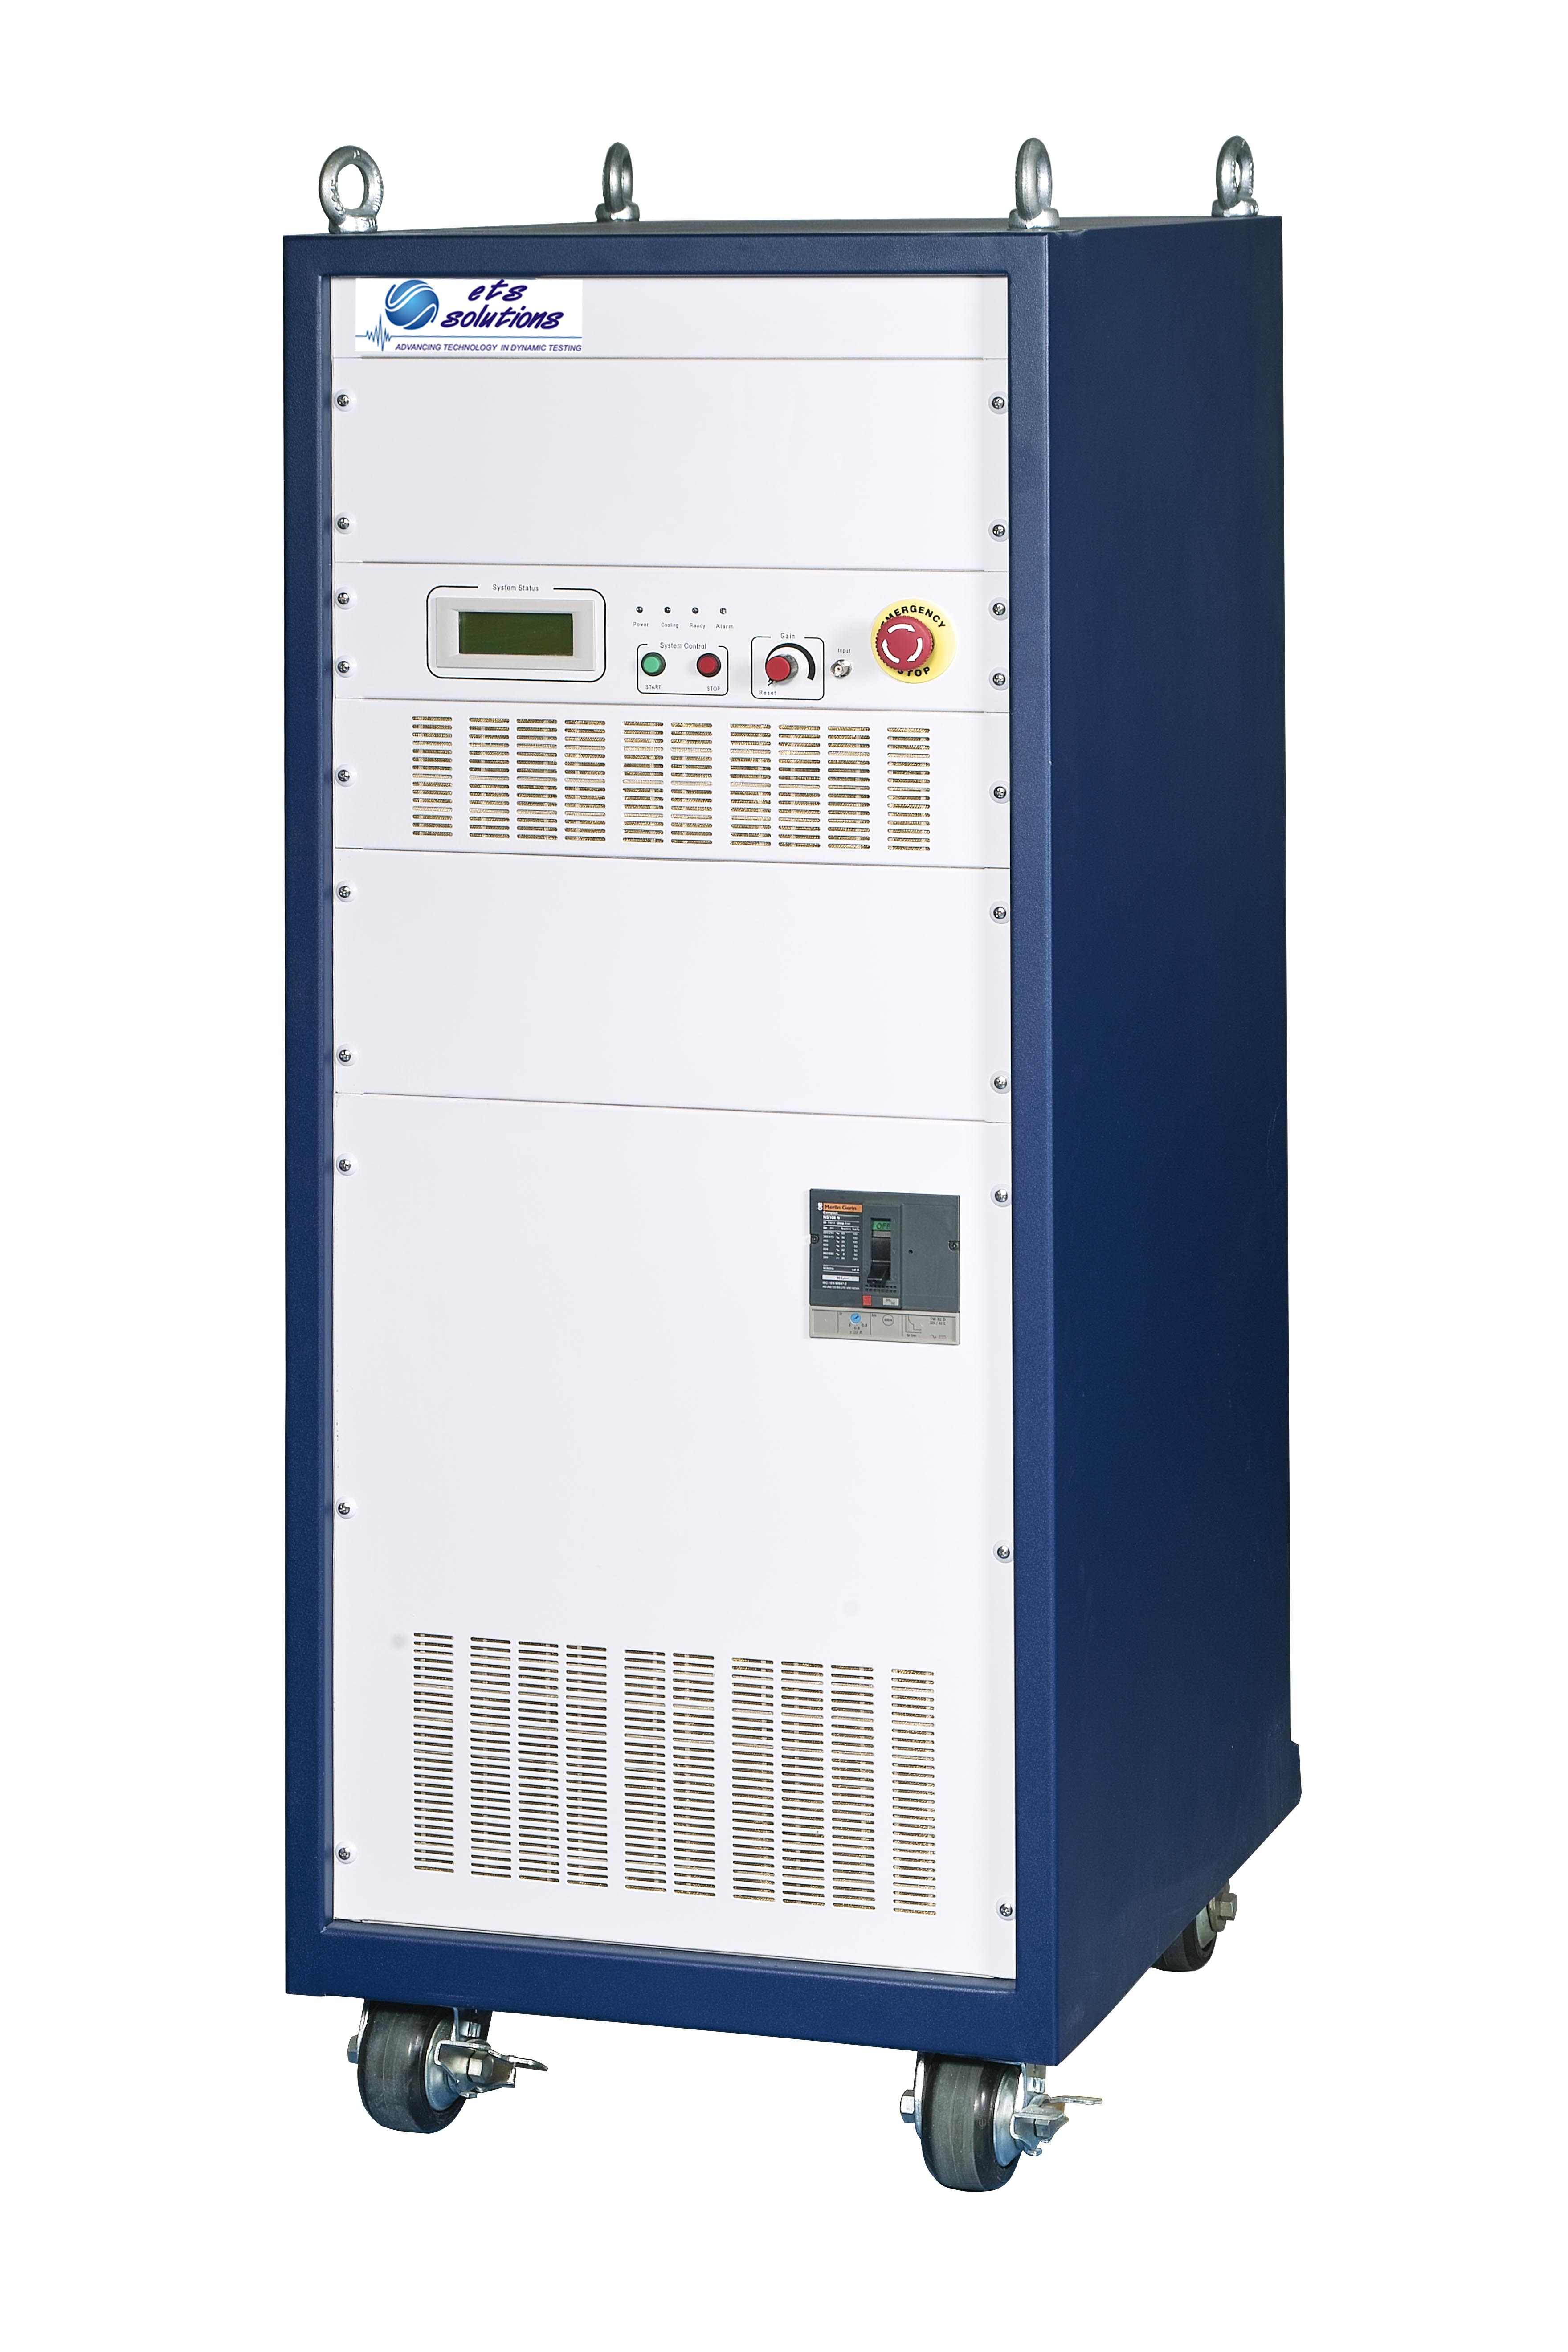 Cabinets: 1, Max Power Output: 2kVA to 12kVA, Max Output Voltage: 120V, Max Output Current: 100A